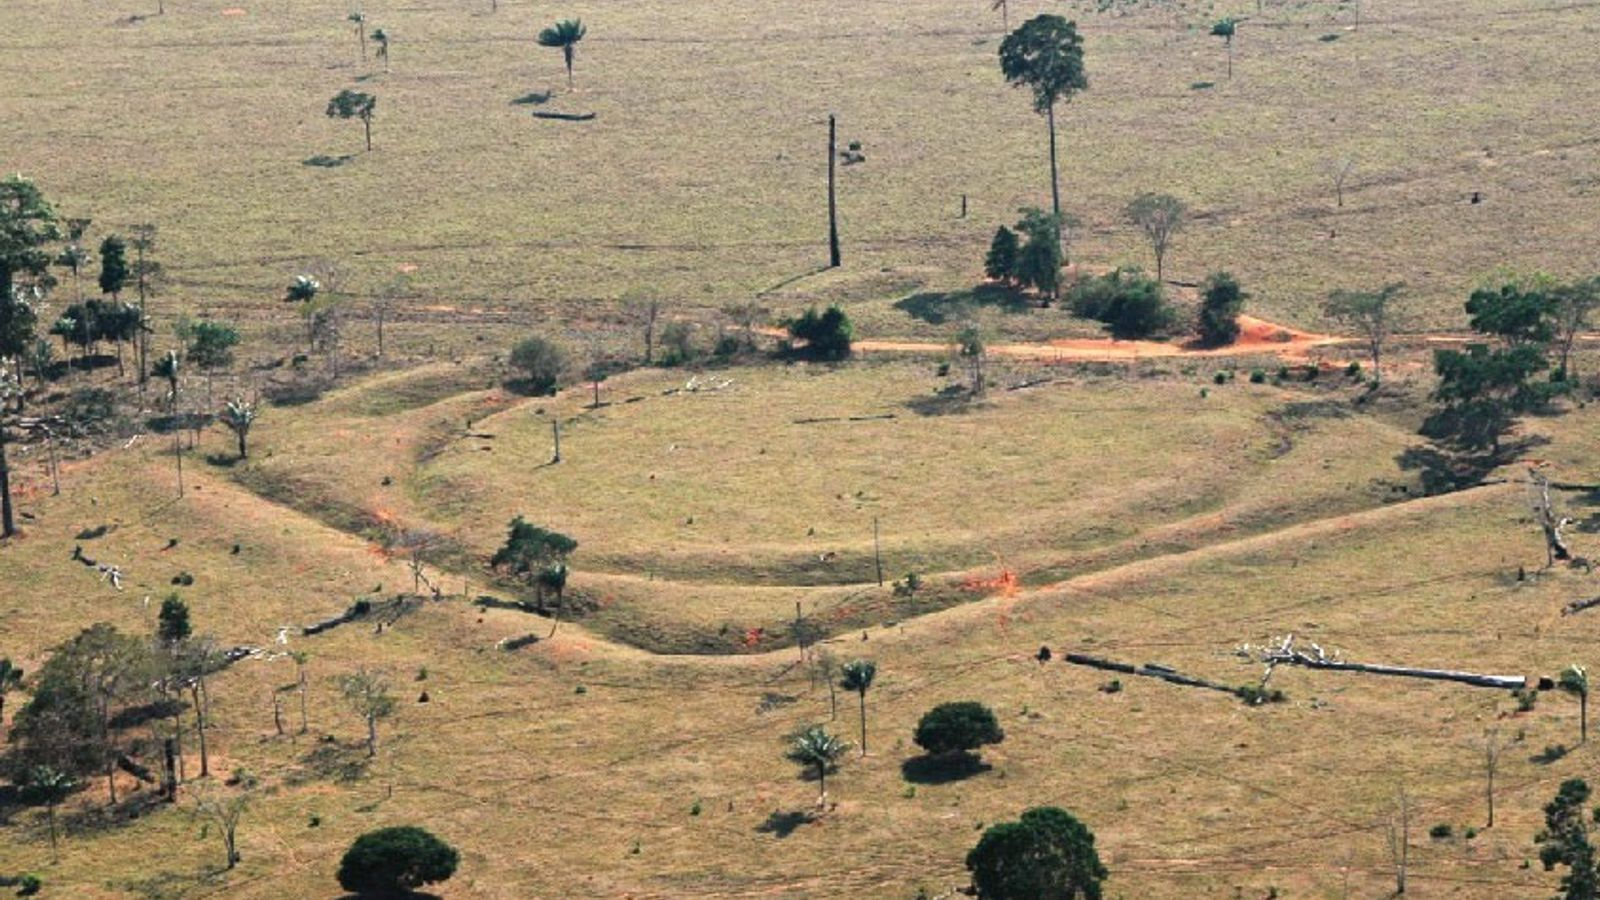 Geoglyphs in the southern Amazon are evidence of a once-thriving population.